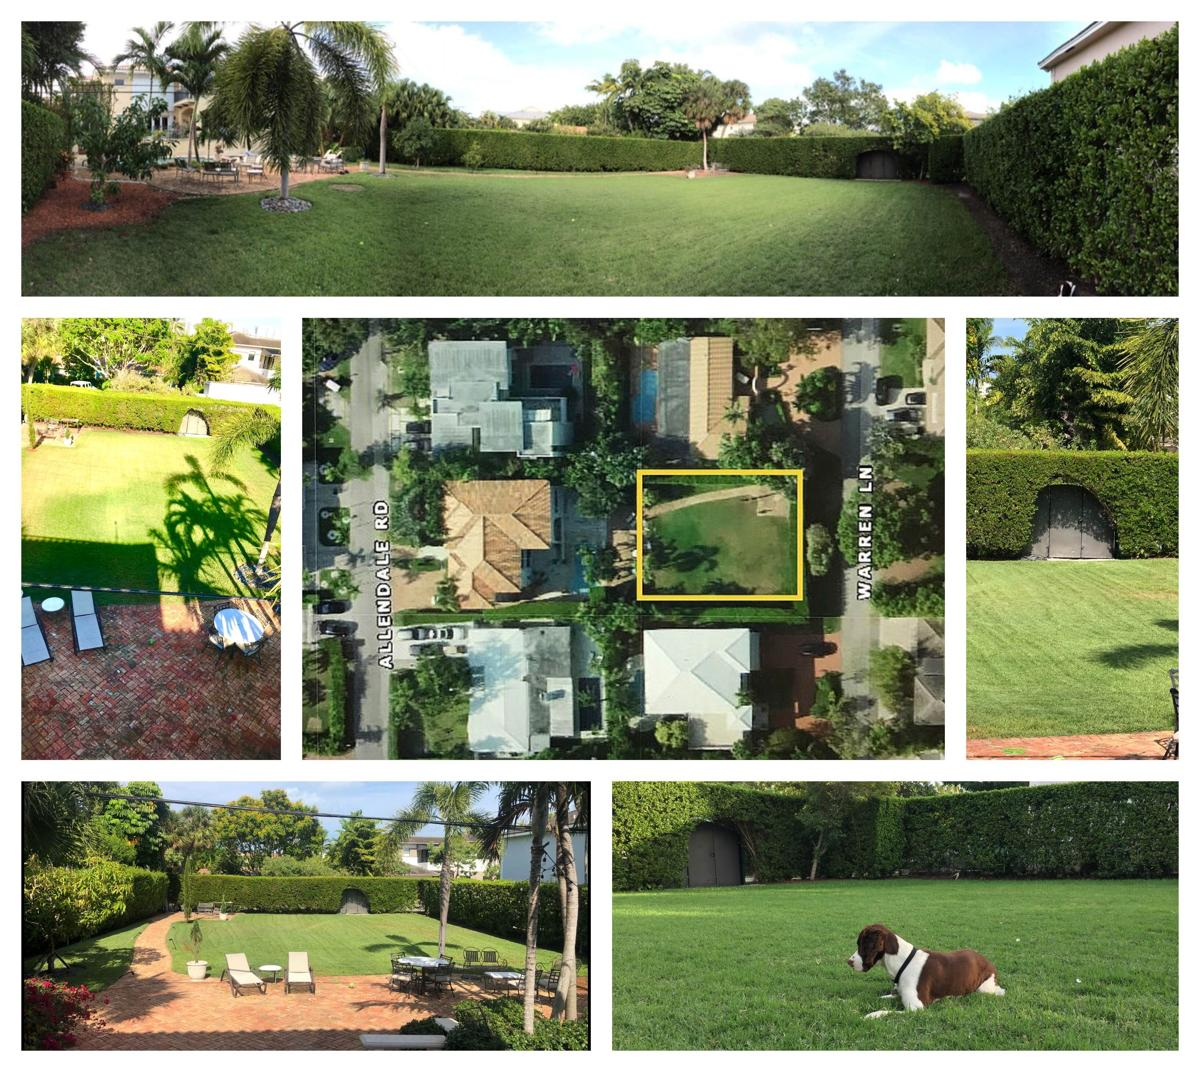 For sale by Owner - Key Biscayne Lot  Ready to build in quiet street